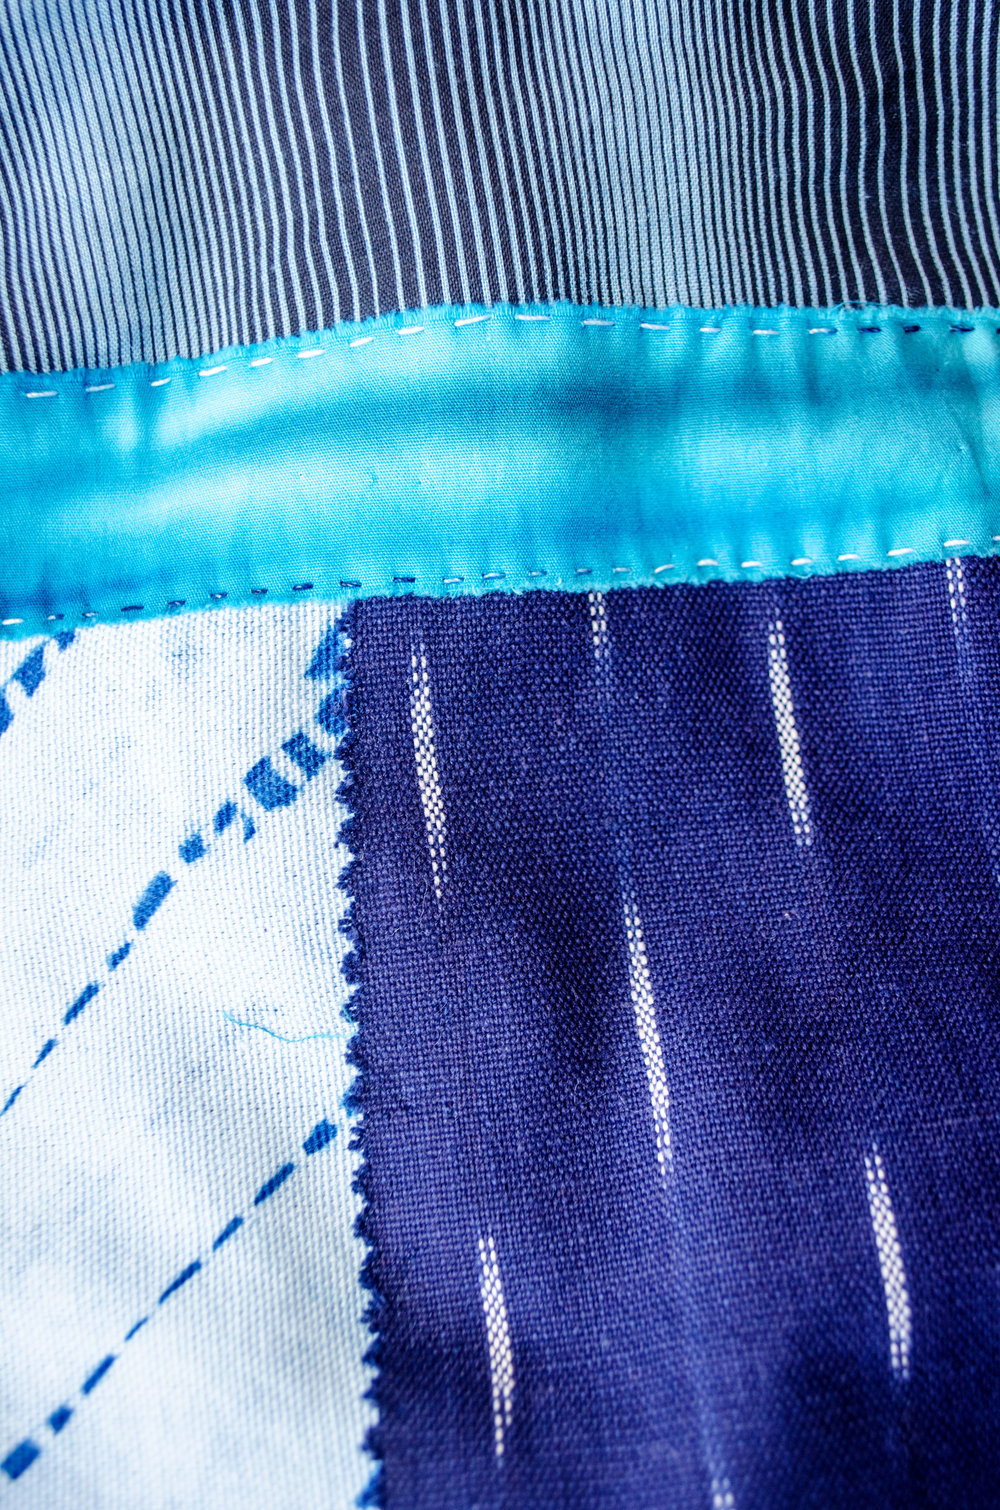 Shibori and ikat dyed with indigo